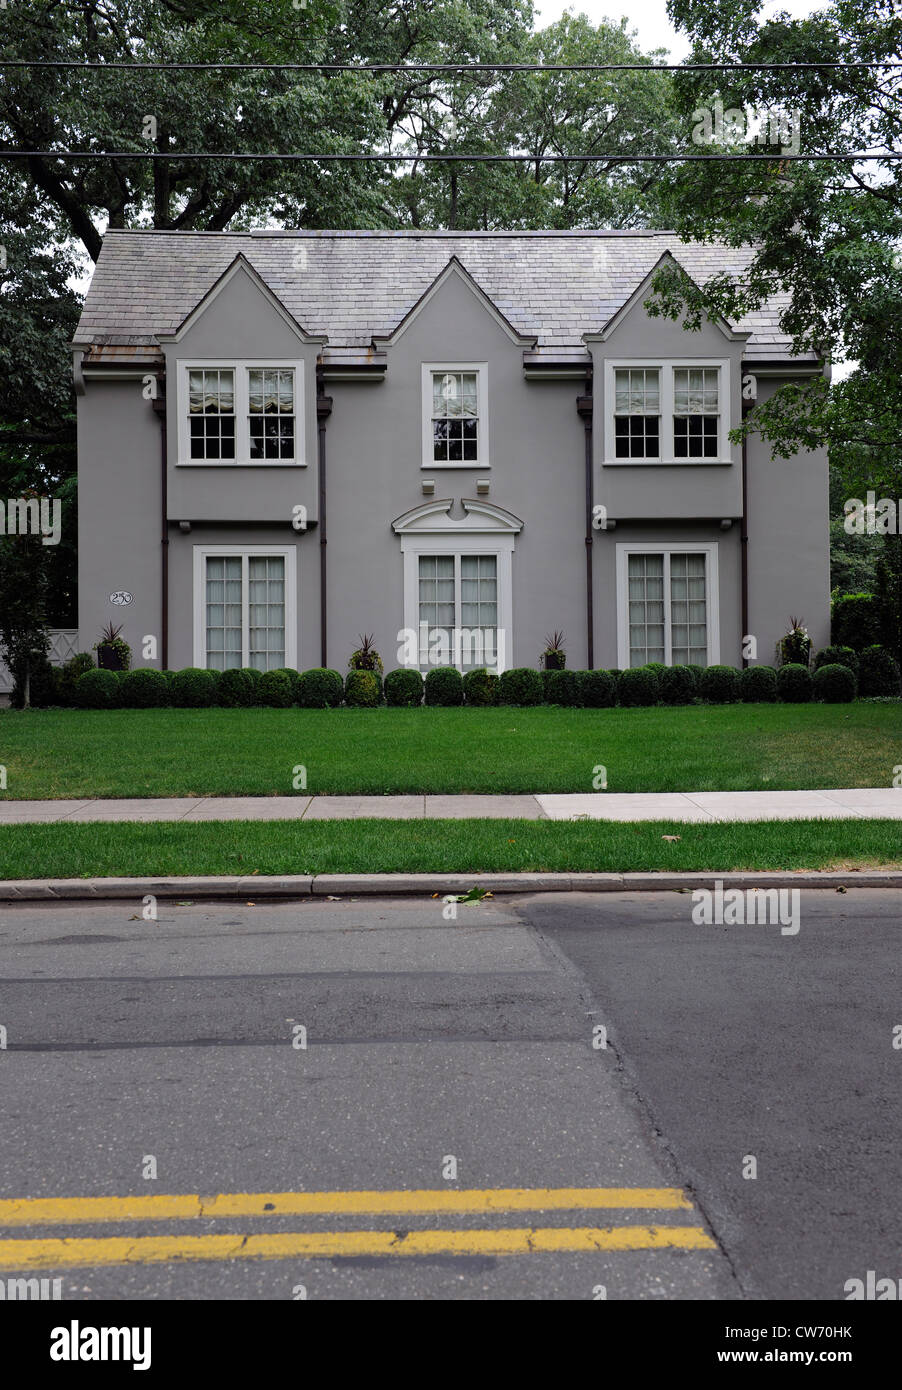 Stucco house with green lawn. New Haven, CT. - Stock Image